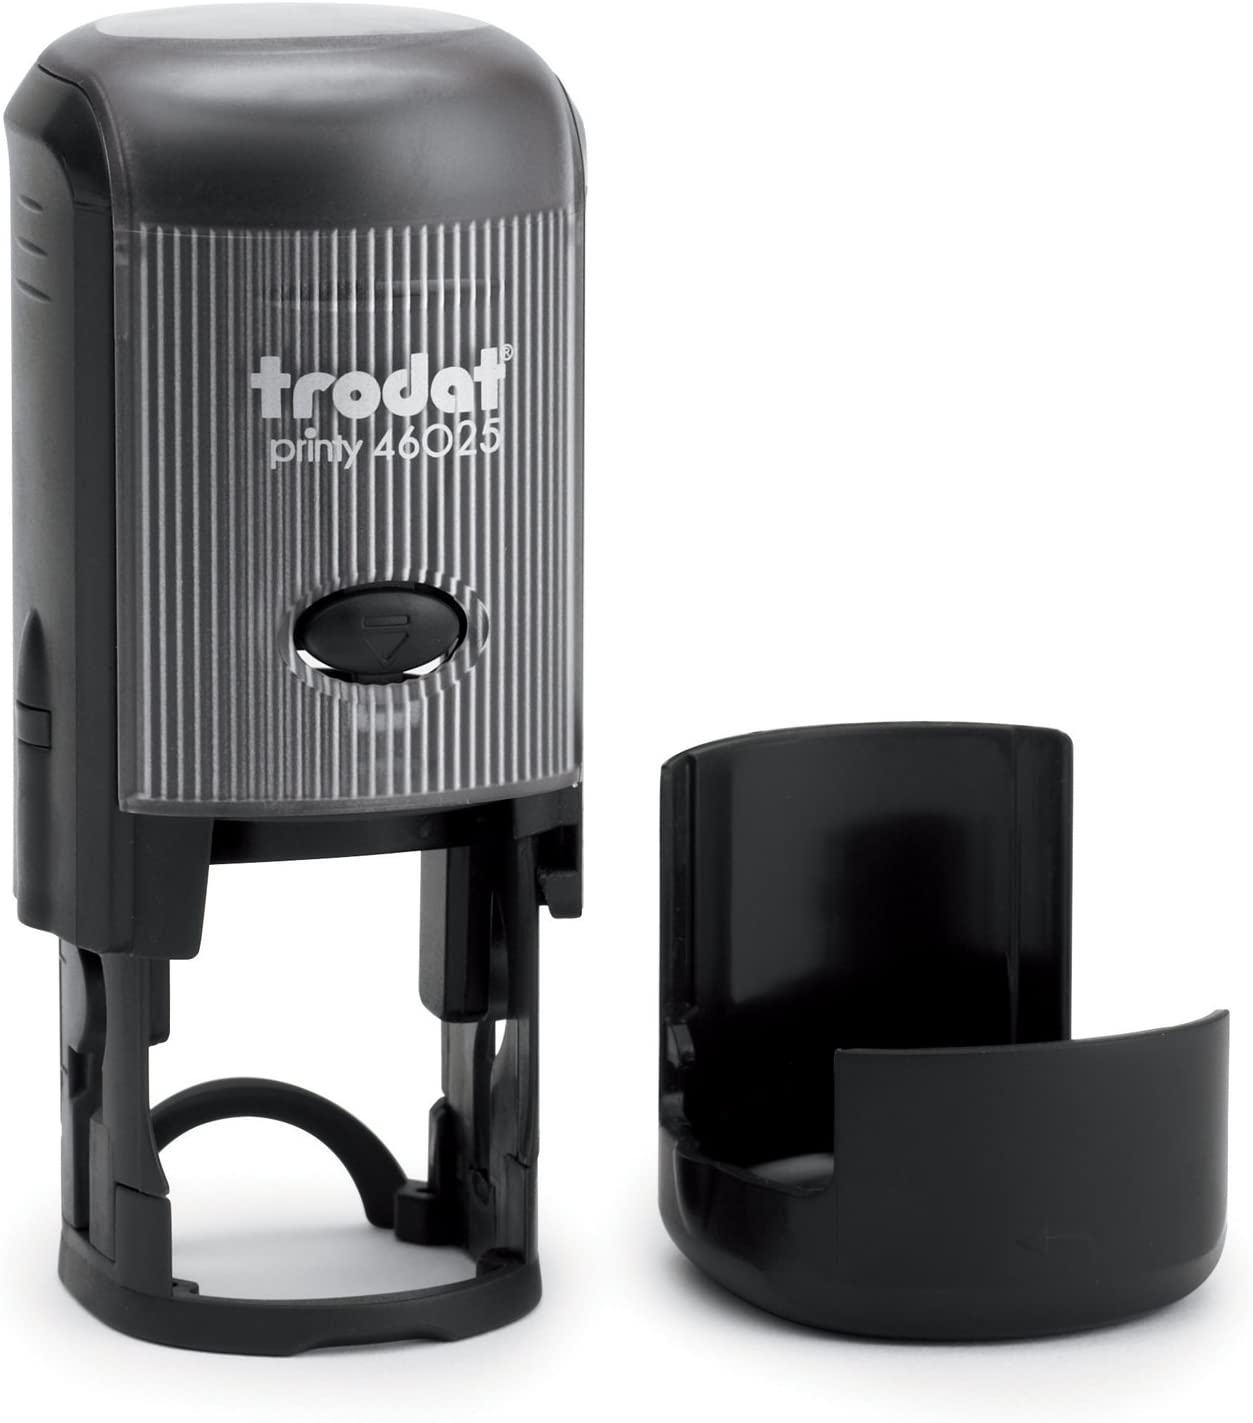 Trodat Printy 46025 Personalized Individual Custom Self Inking Stamp (1